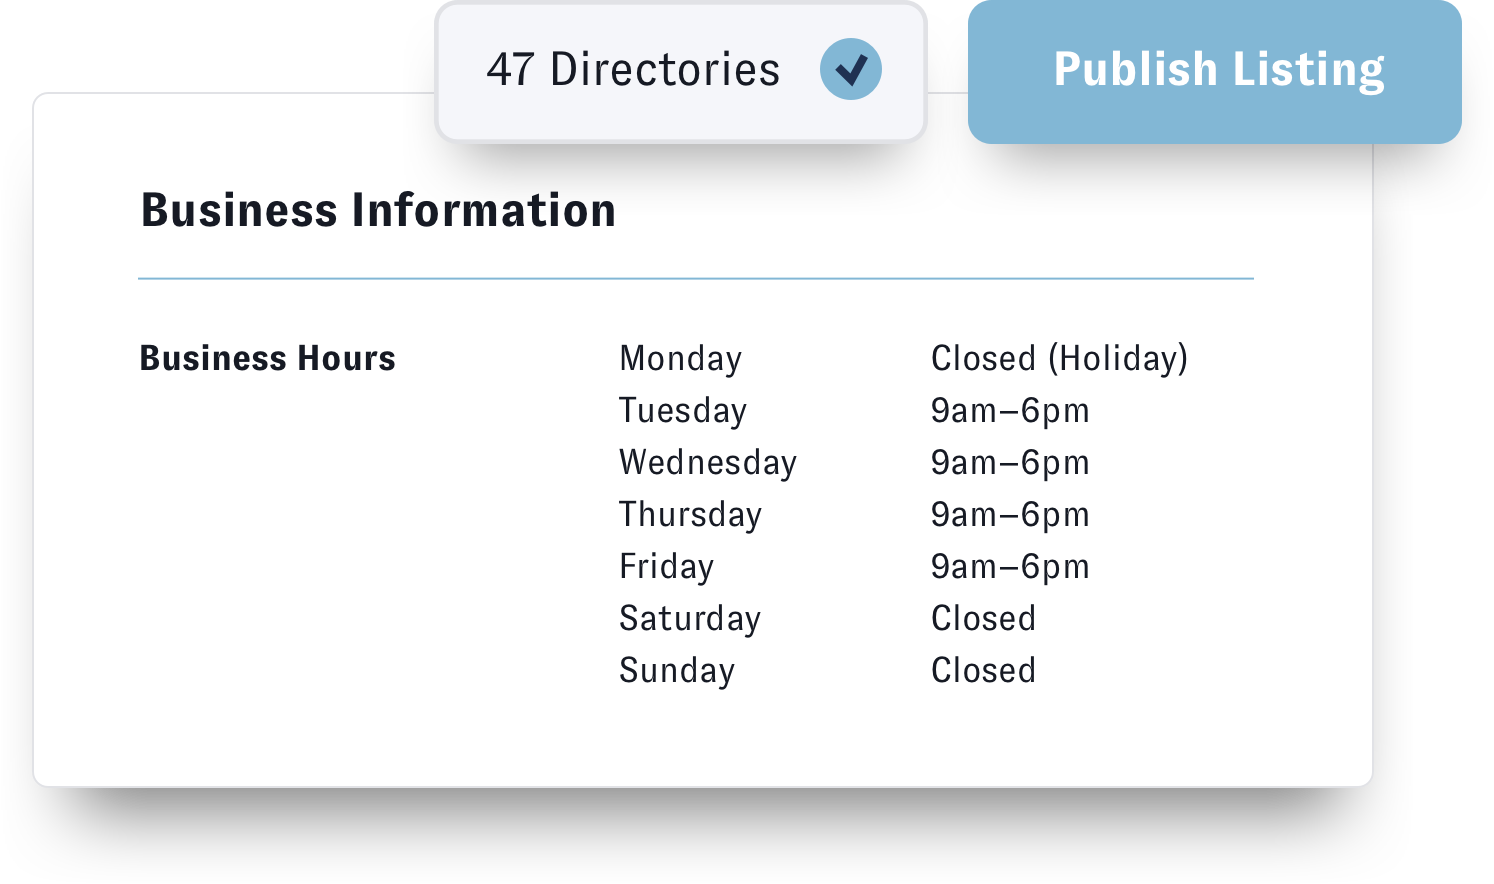 Nuvi's business listing management solution, Nuvi Locate, allows companies to keep any and all their business listings up to date all in one place. This example shows that 47 directories were updates with holiday business hours